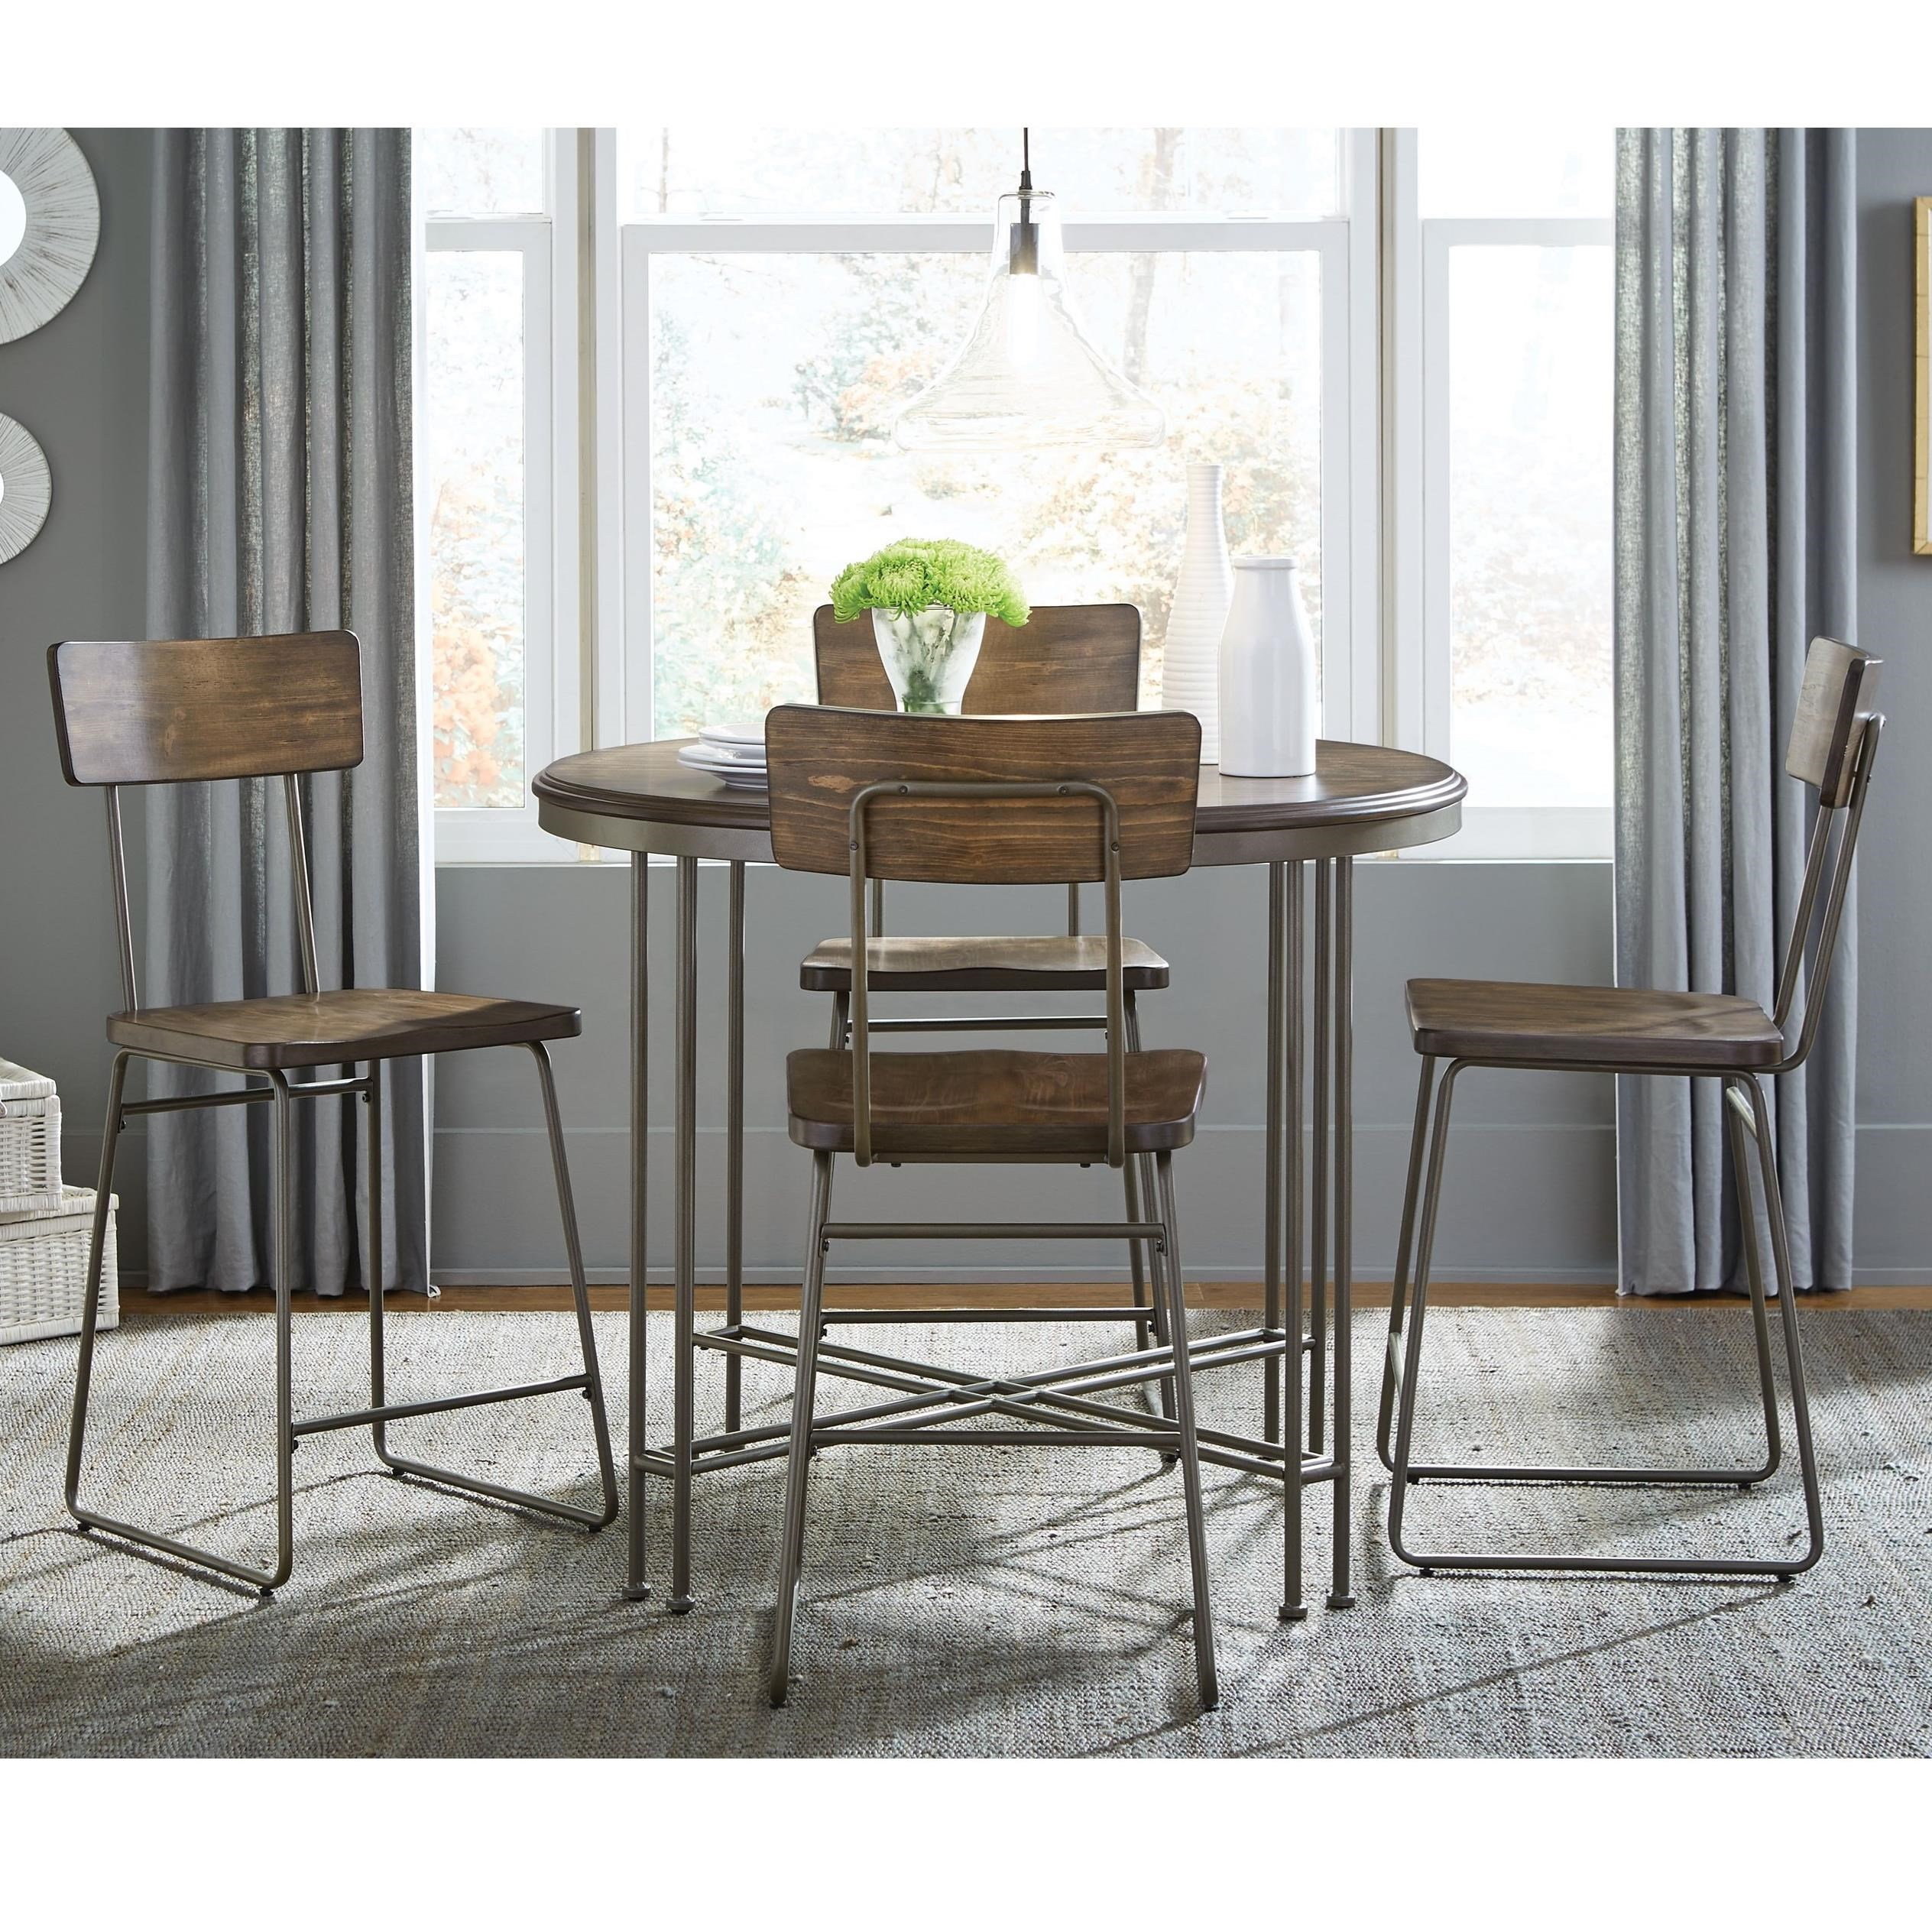 Standard Furniture Oslo Counter Height Table and Stool Set - Item Number: 11601+4x11604